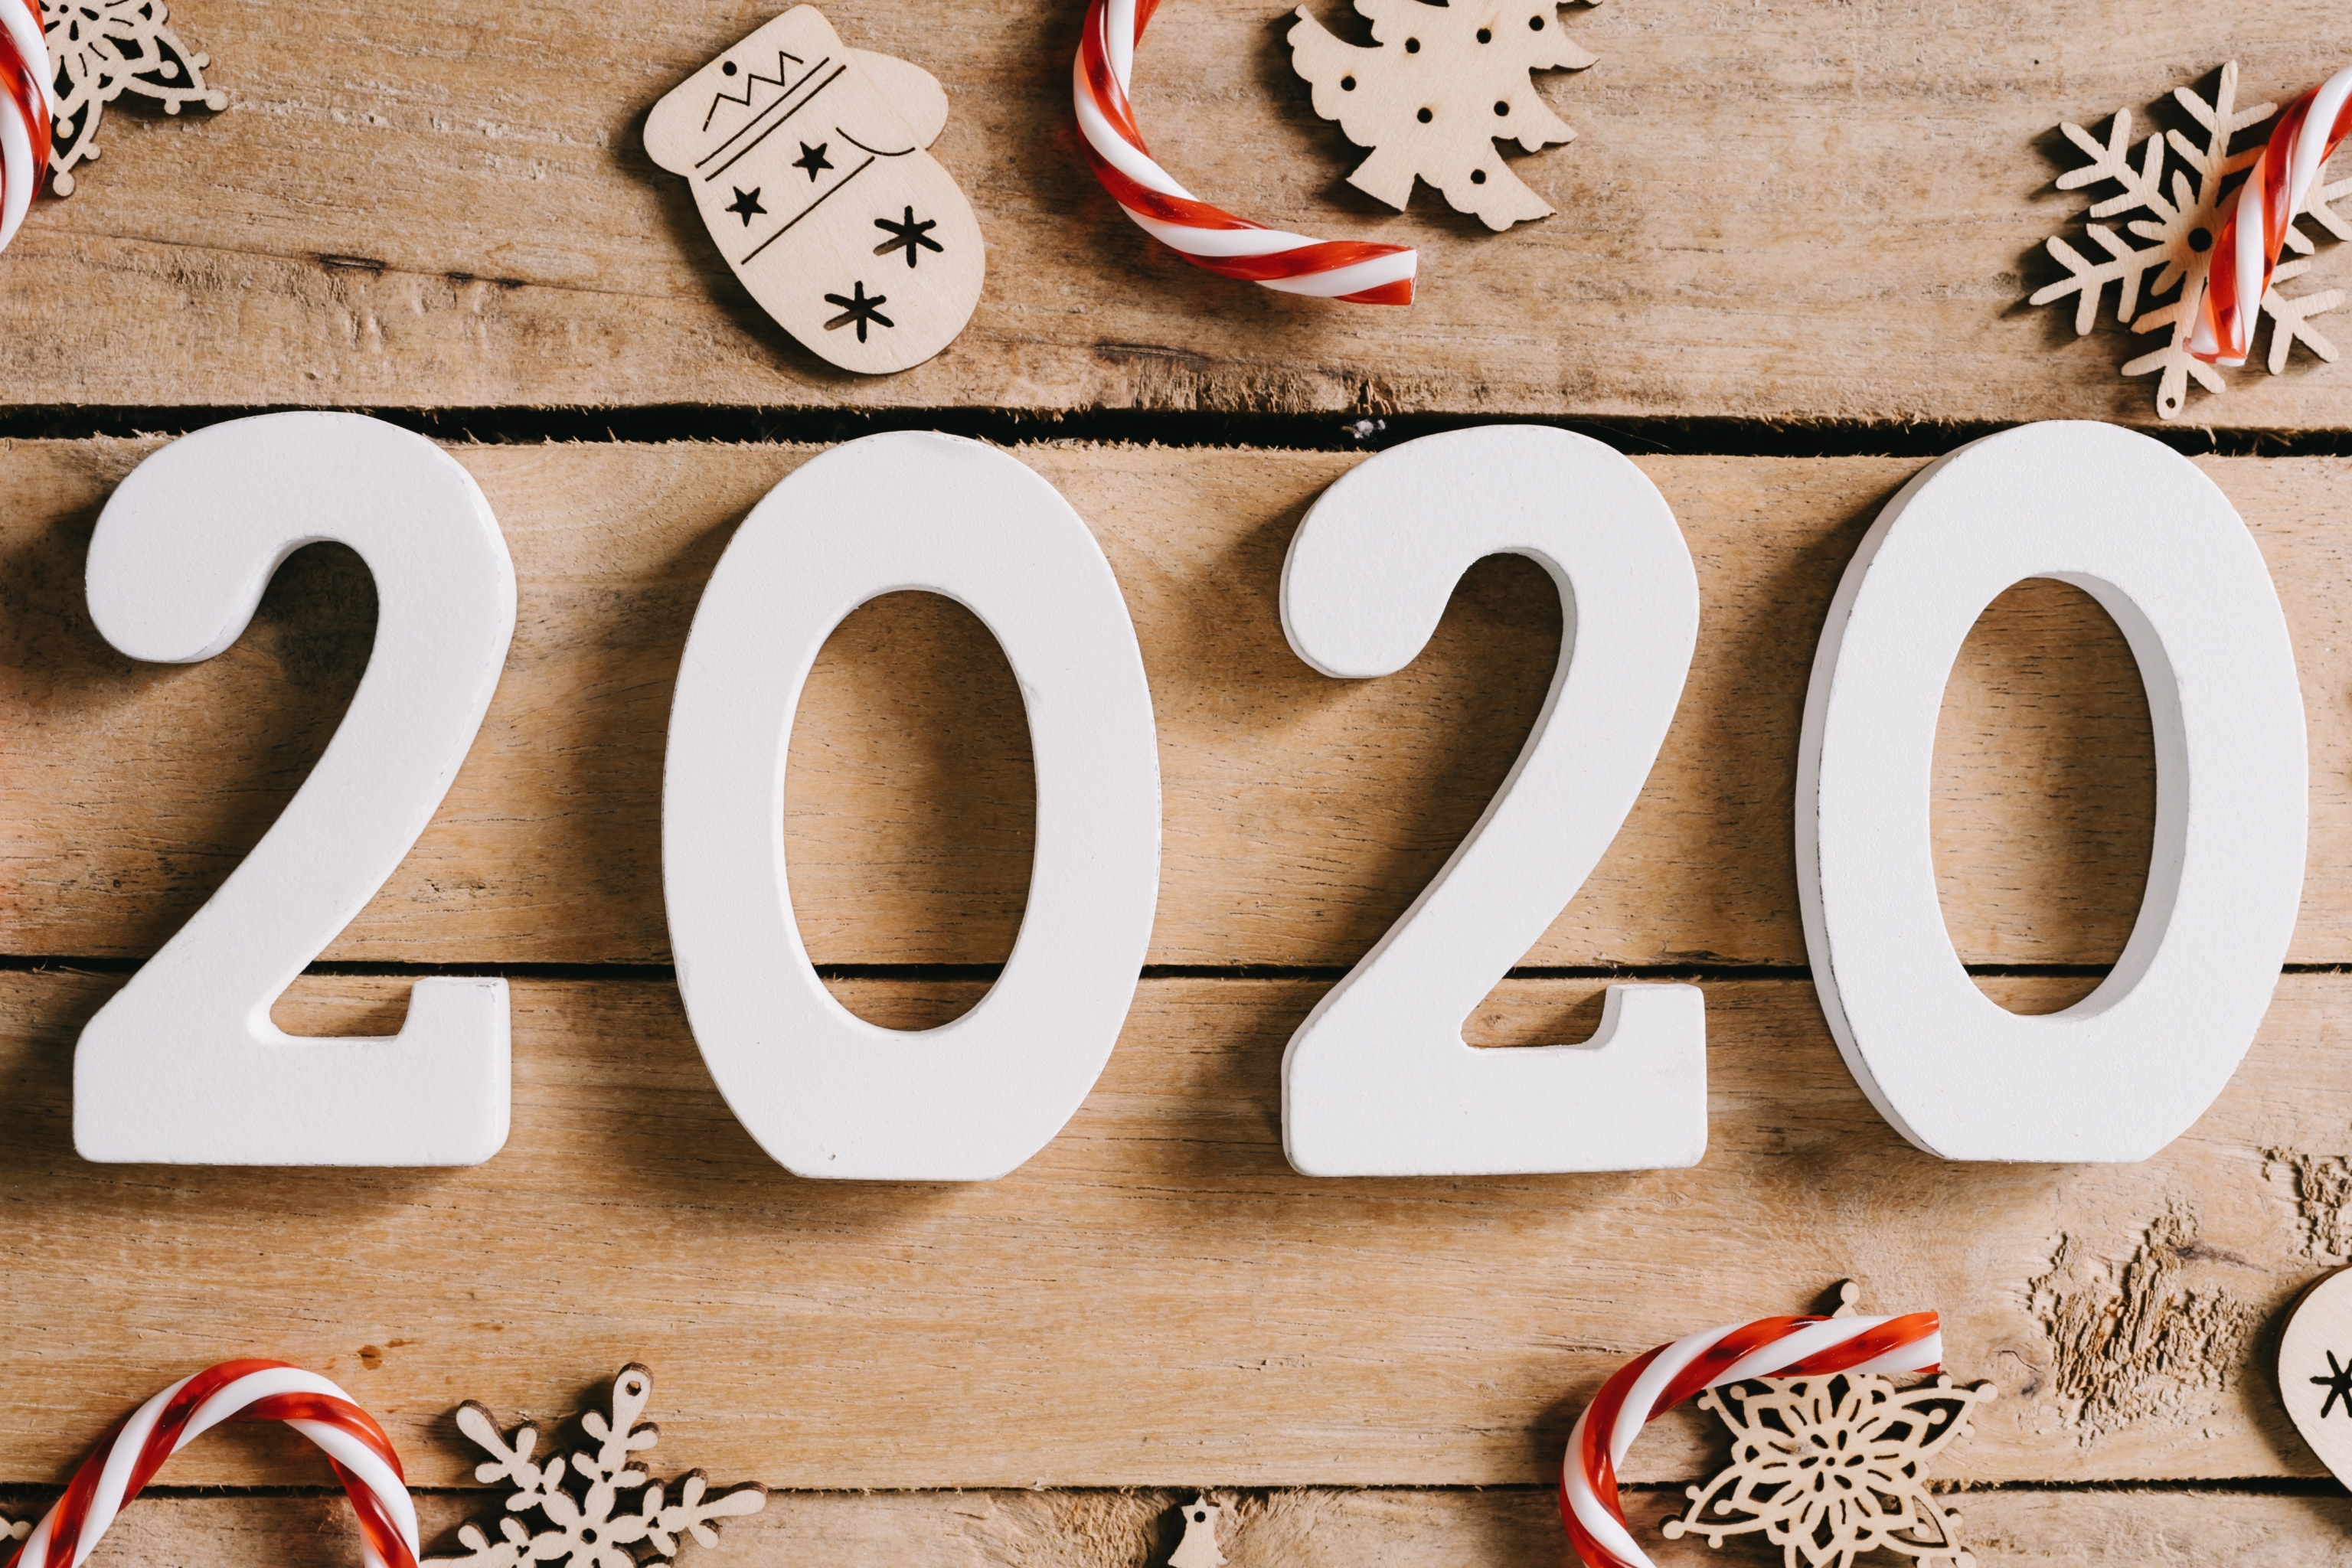 HolidayNew Year 2020 3072x2048 Wallpaper ID 828838   Mobile Abyss 3072x2048